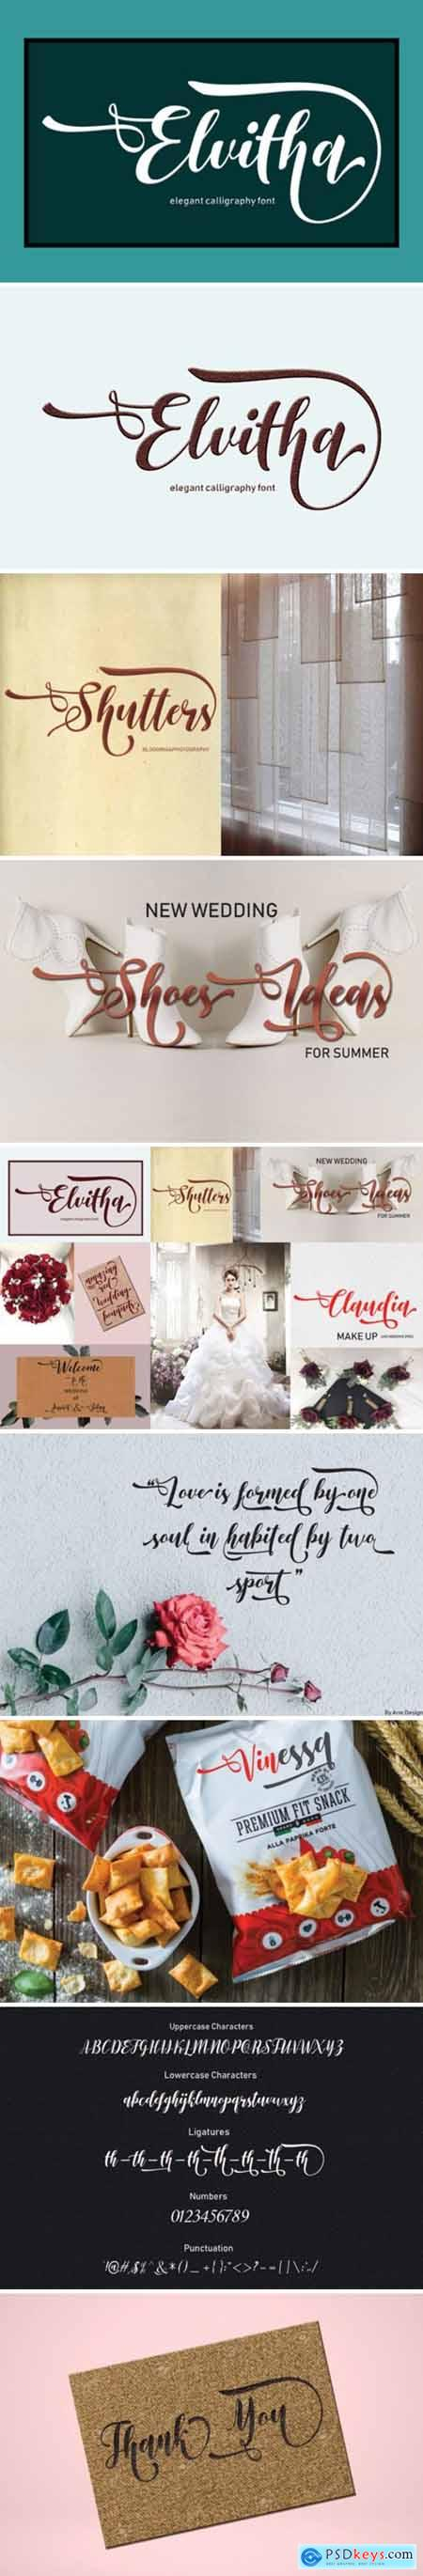 Elvitha Font » Free Download Photoshop Vector Stock image